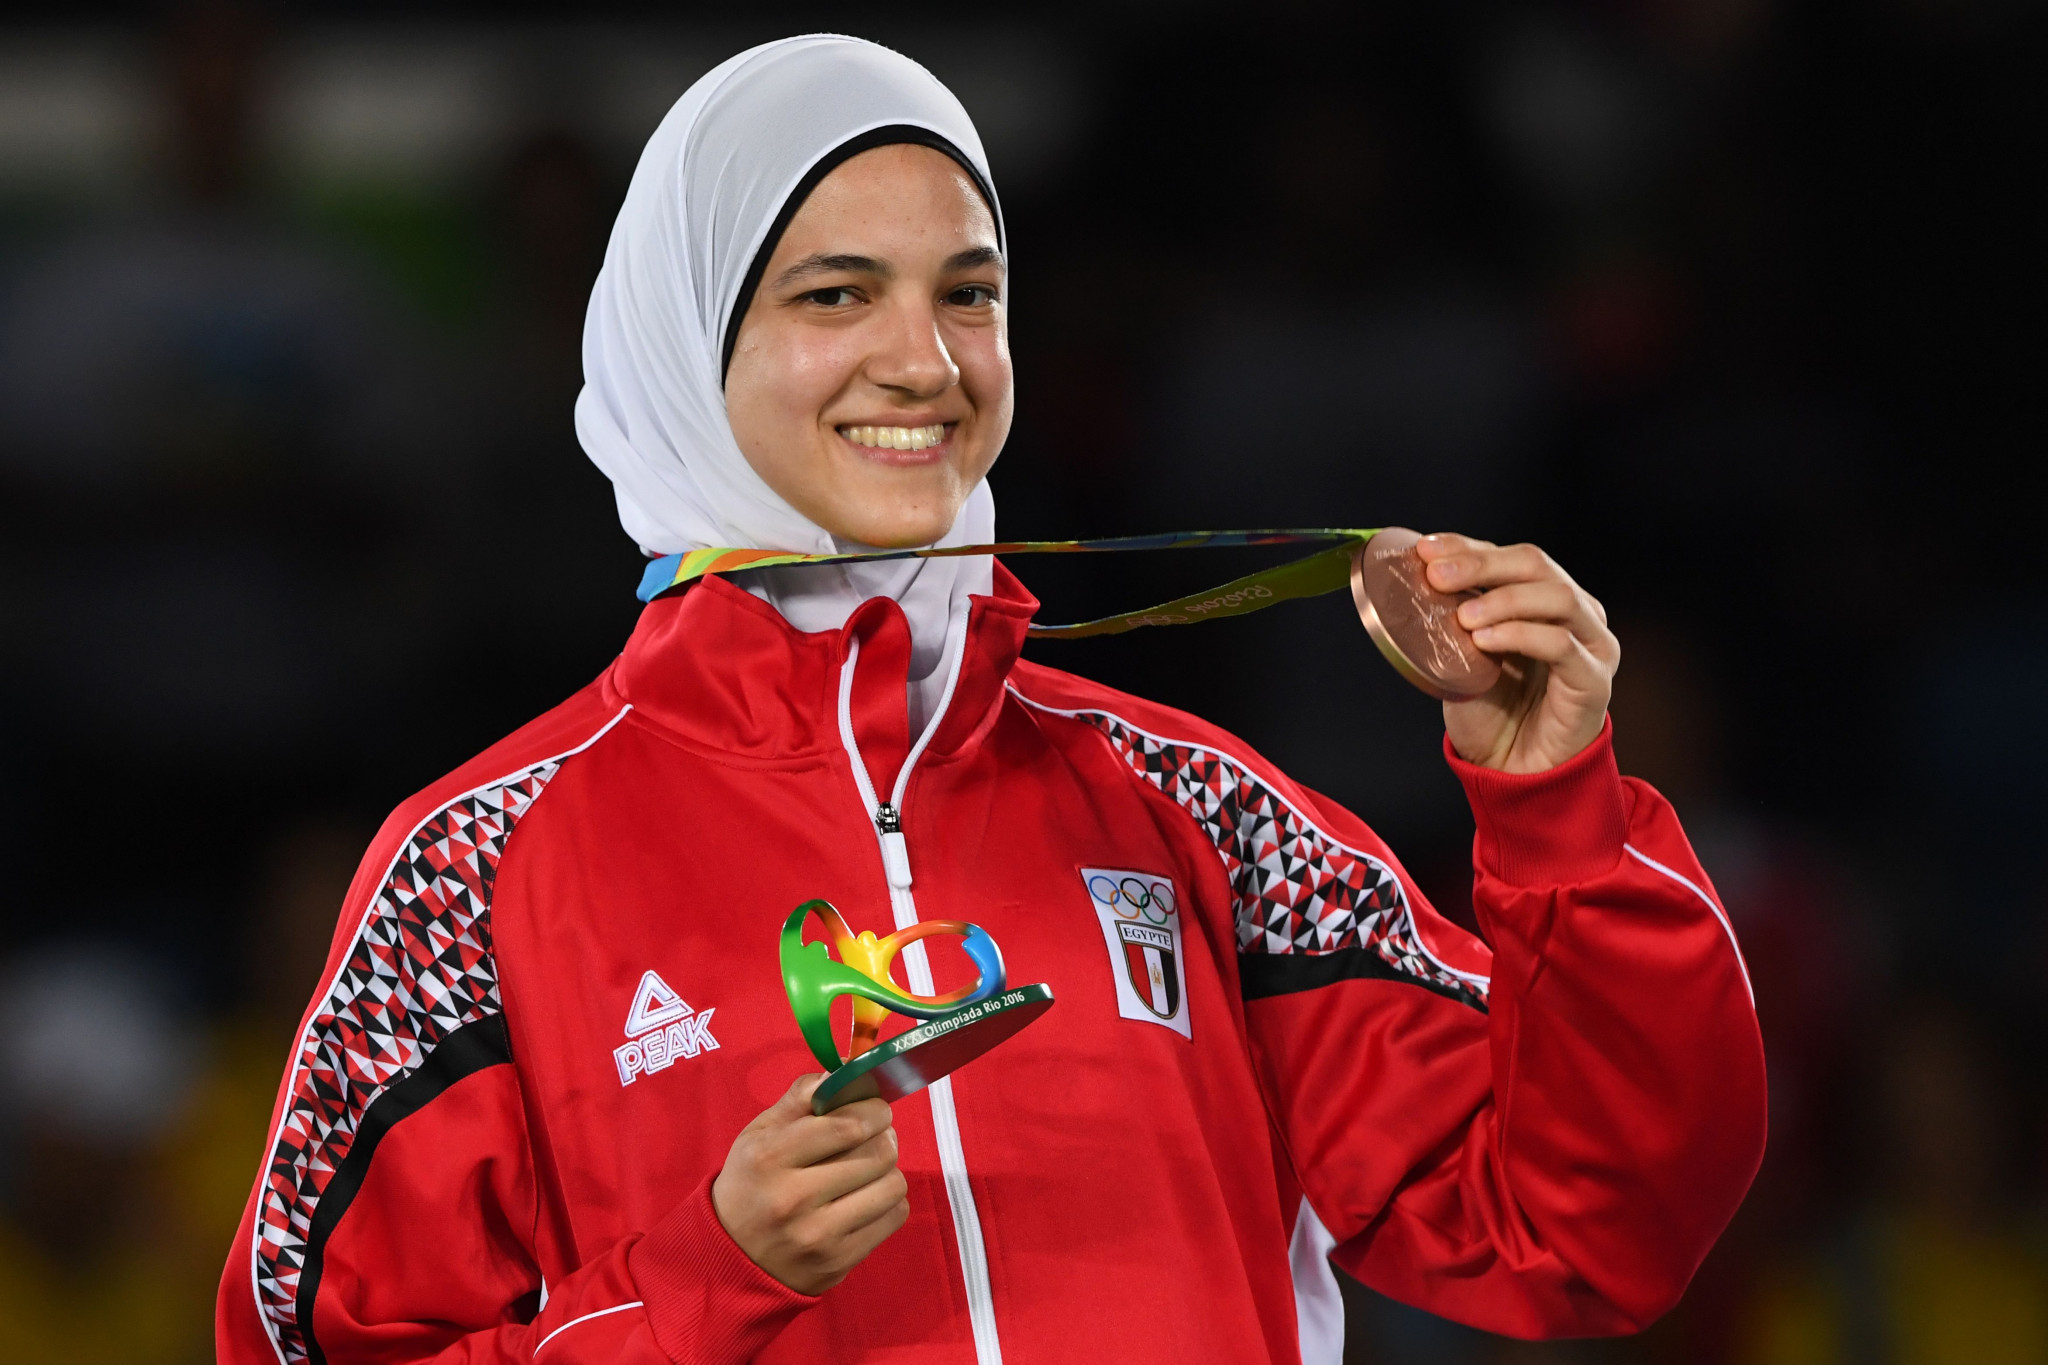 Egypt's Hedaya Malak Wahba, a candidate for the World Taekwondo Athletes' Committee, won the Olympic bronze medal in the under-57kg category at Rio 2016 ©Getty Images